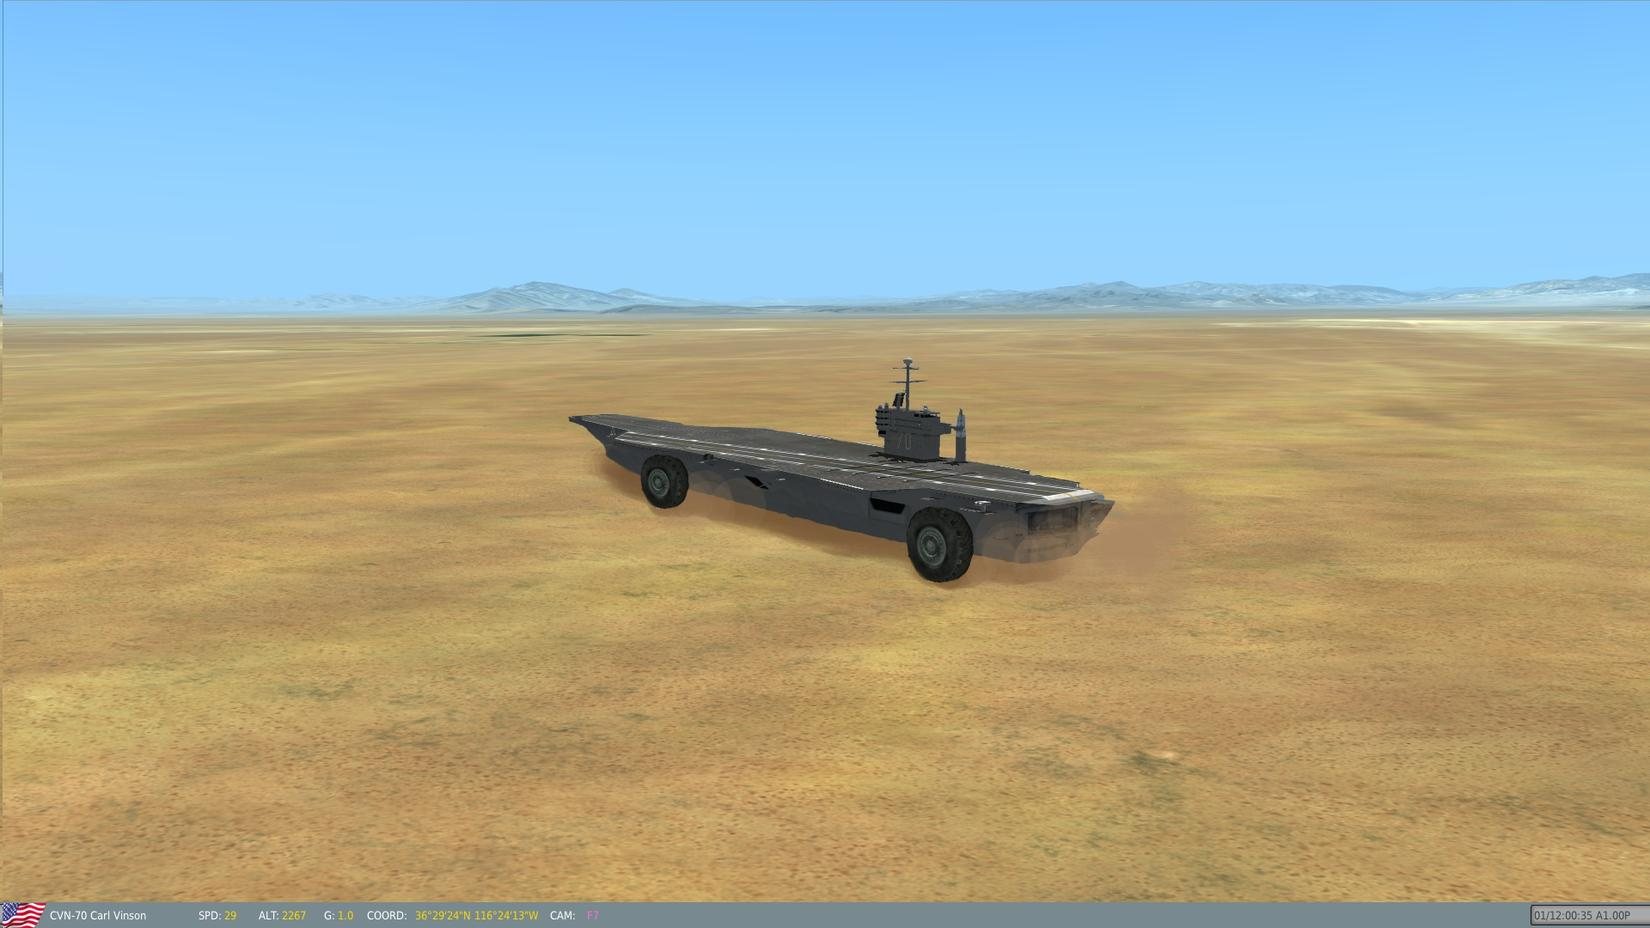 Why nevada simhq forums i was thinking maybe a third party modder could just throw some gigantic wheels on the bottom of the carl vinson and have it drive around the desert at gumiabroncs Image collections